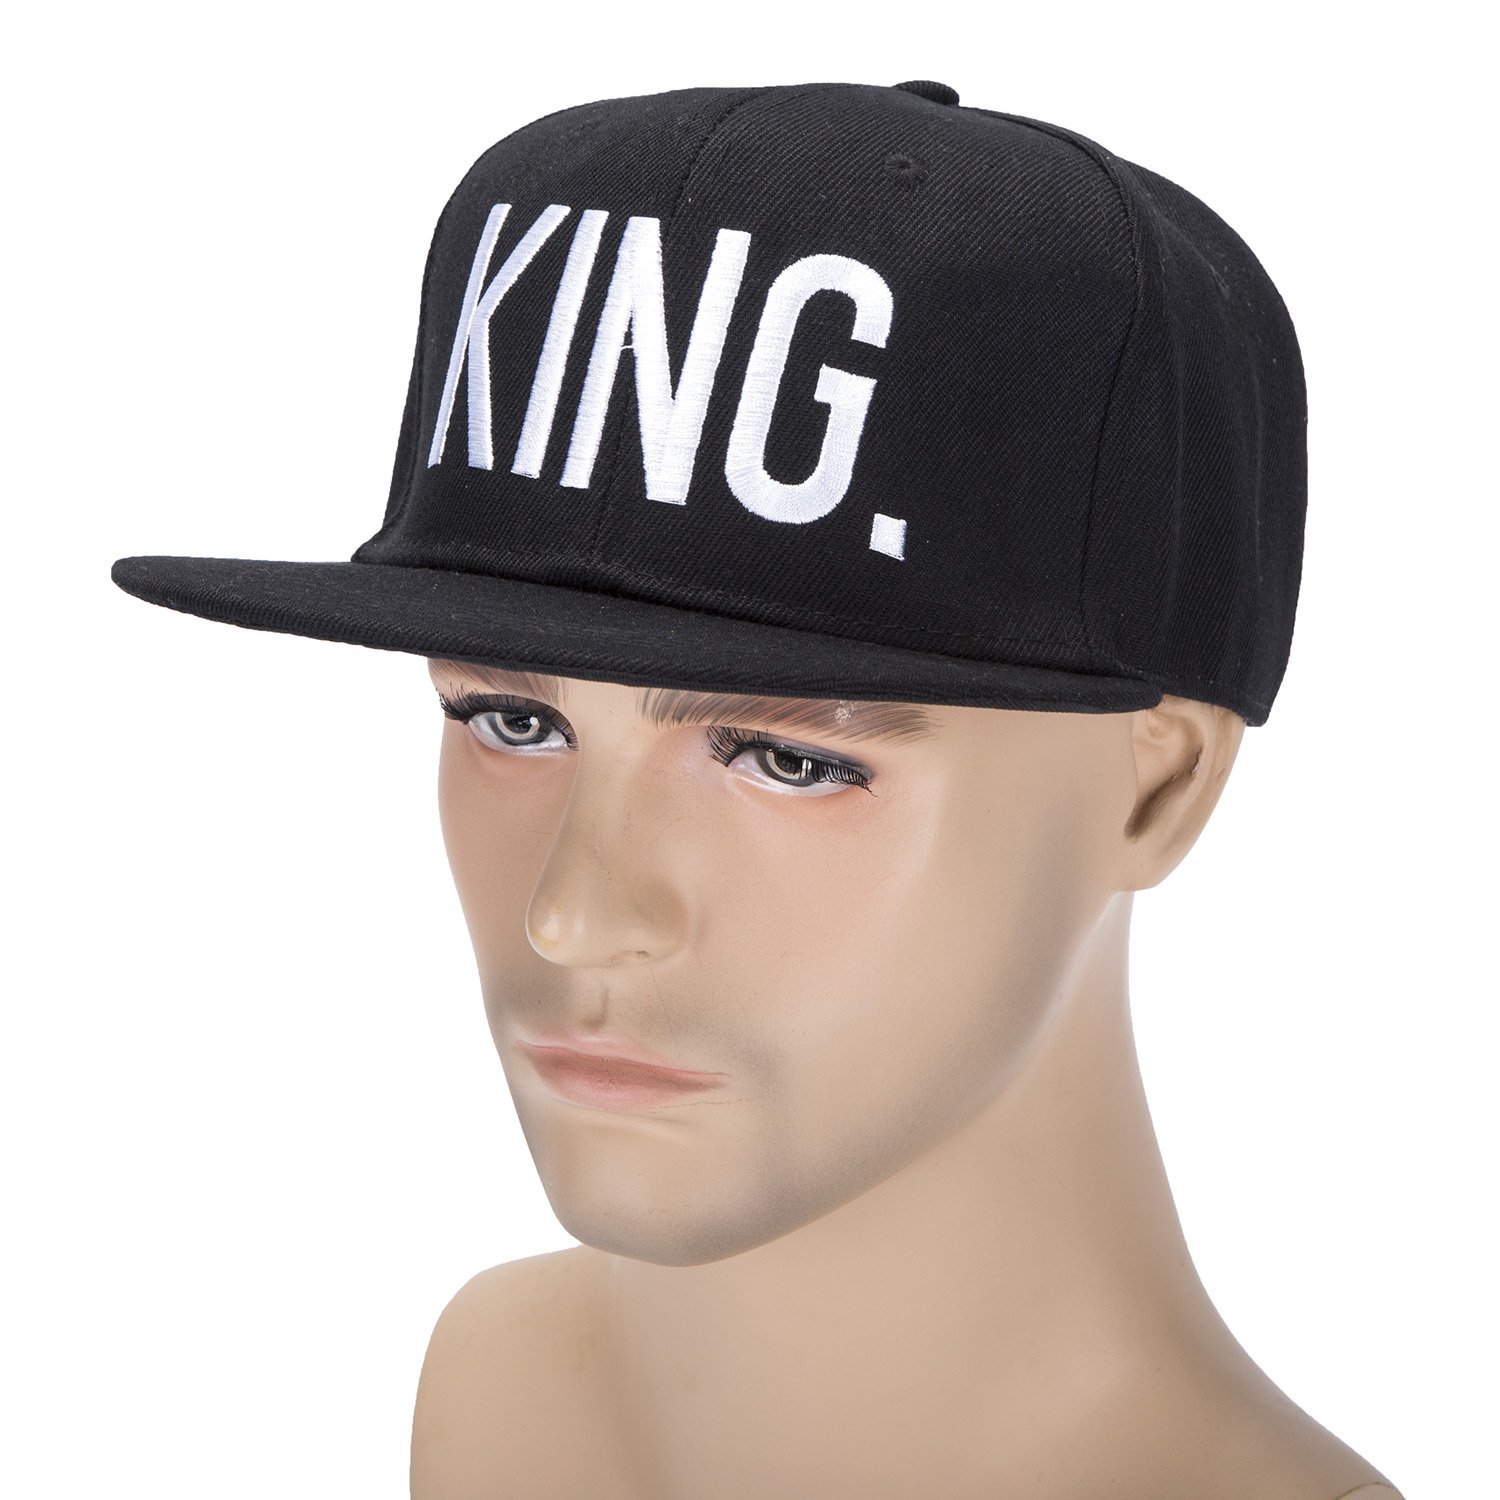 52aa0596a18 KING and QUEEN Lovers Couples Snapback Caps Adjustable Hip-Hop Hats Fashion  Pairs Hat